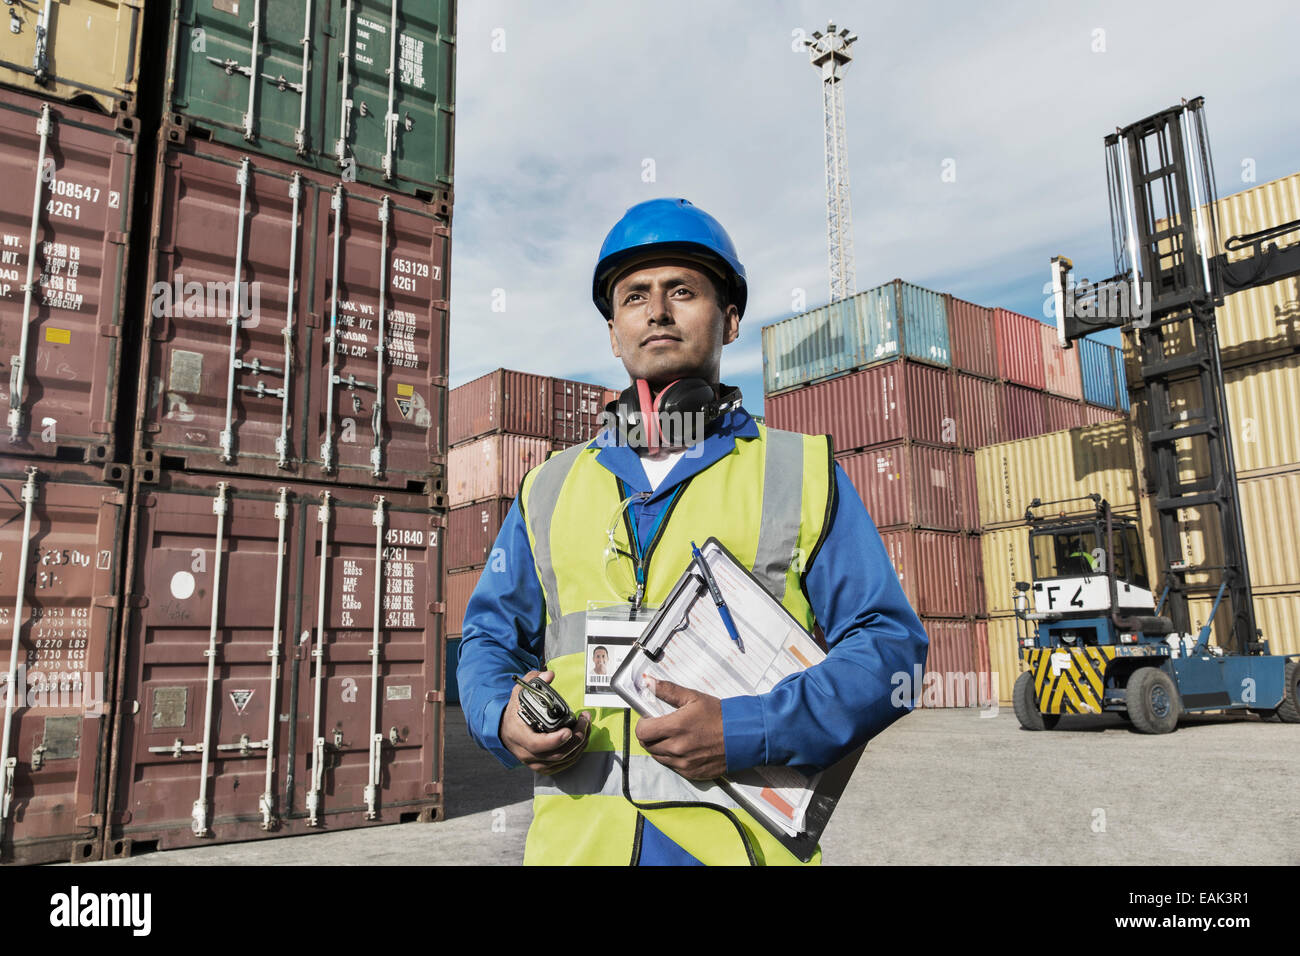 Worker holding clipboard near cargo containers Stock Photo